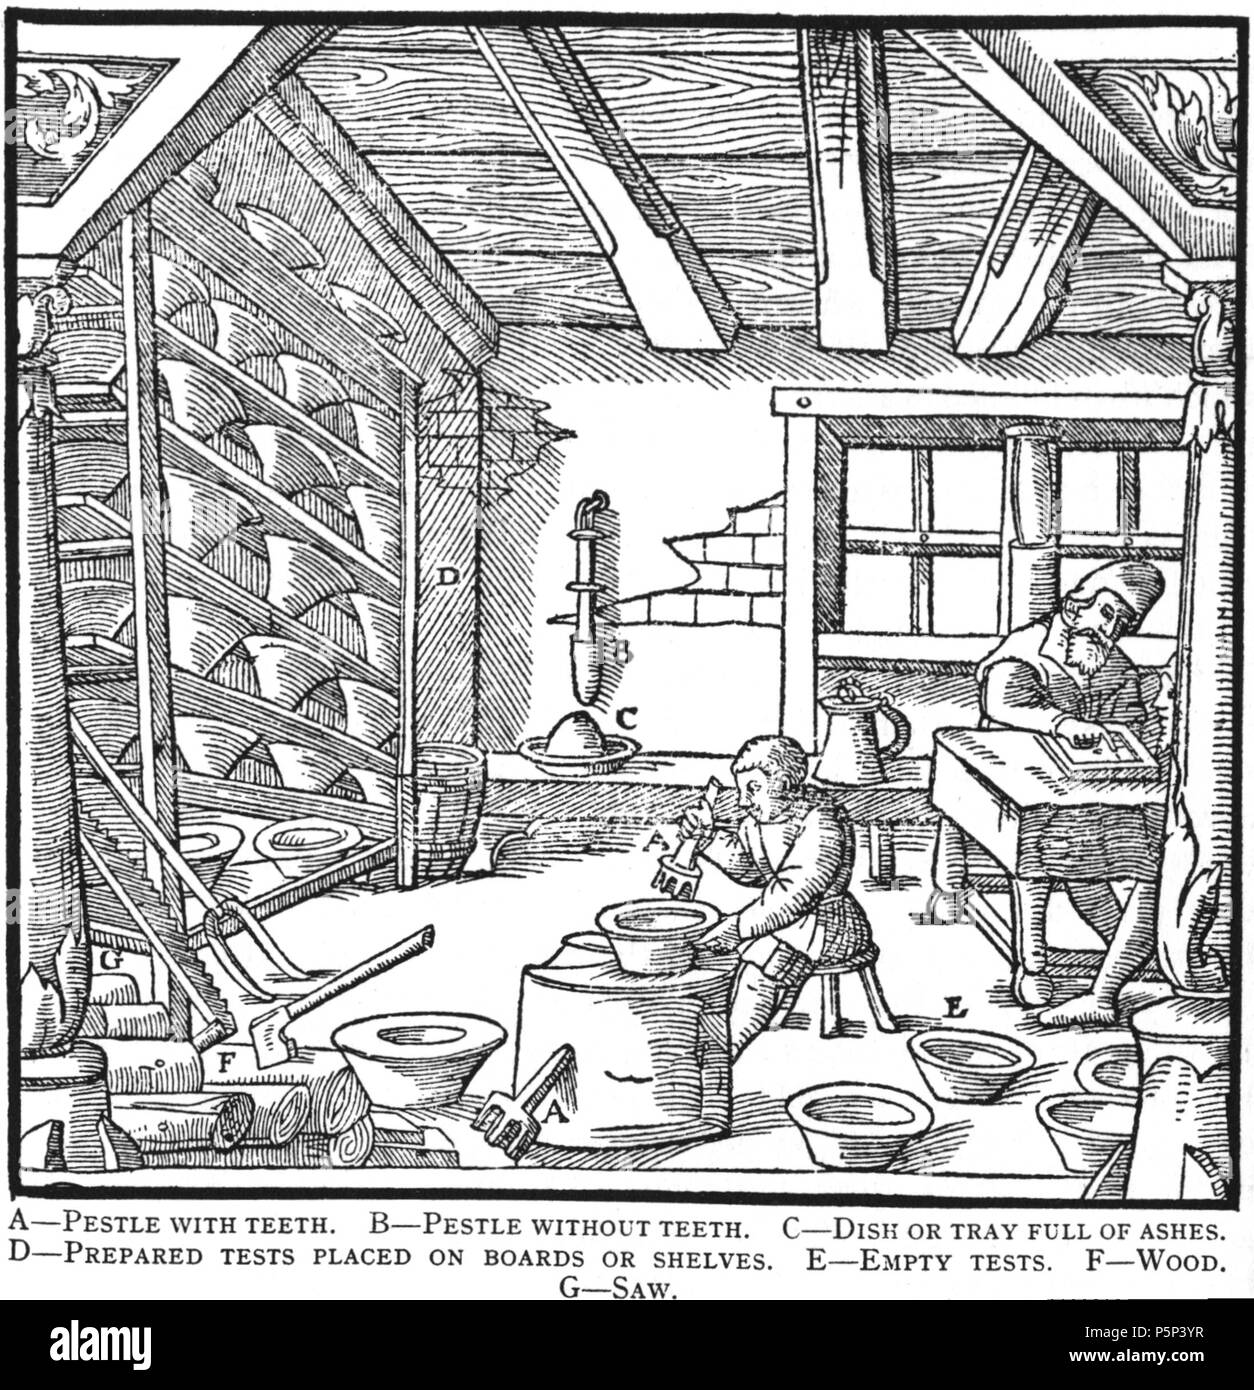 N/A. Woodcut illustration from De re metallica by Georgius Agricola. This is a 300dpi scan from the 1950 Dover edition of the 1913 Hoover translation of the 1556 reference. The Dover edition has slightly smaller size prints than the Hoover (which is a rare book). The woodcuts were recreated for the 1913 printing. Filenames (except for the title page) indicate the chapter (2, 3, 5, etc.) followed by the sequential number of the illustration. 2 May 2005, 06:04:28. TCO (talk) 222 Book10-13 - Stock Image